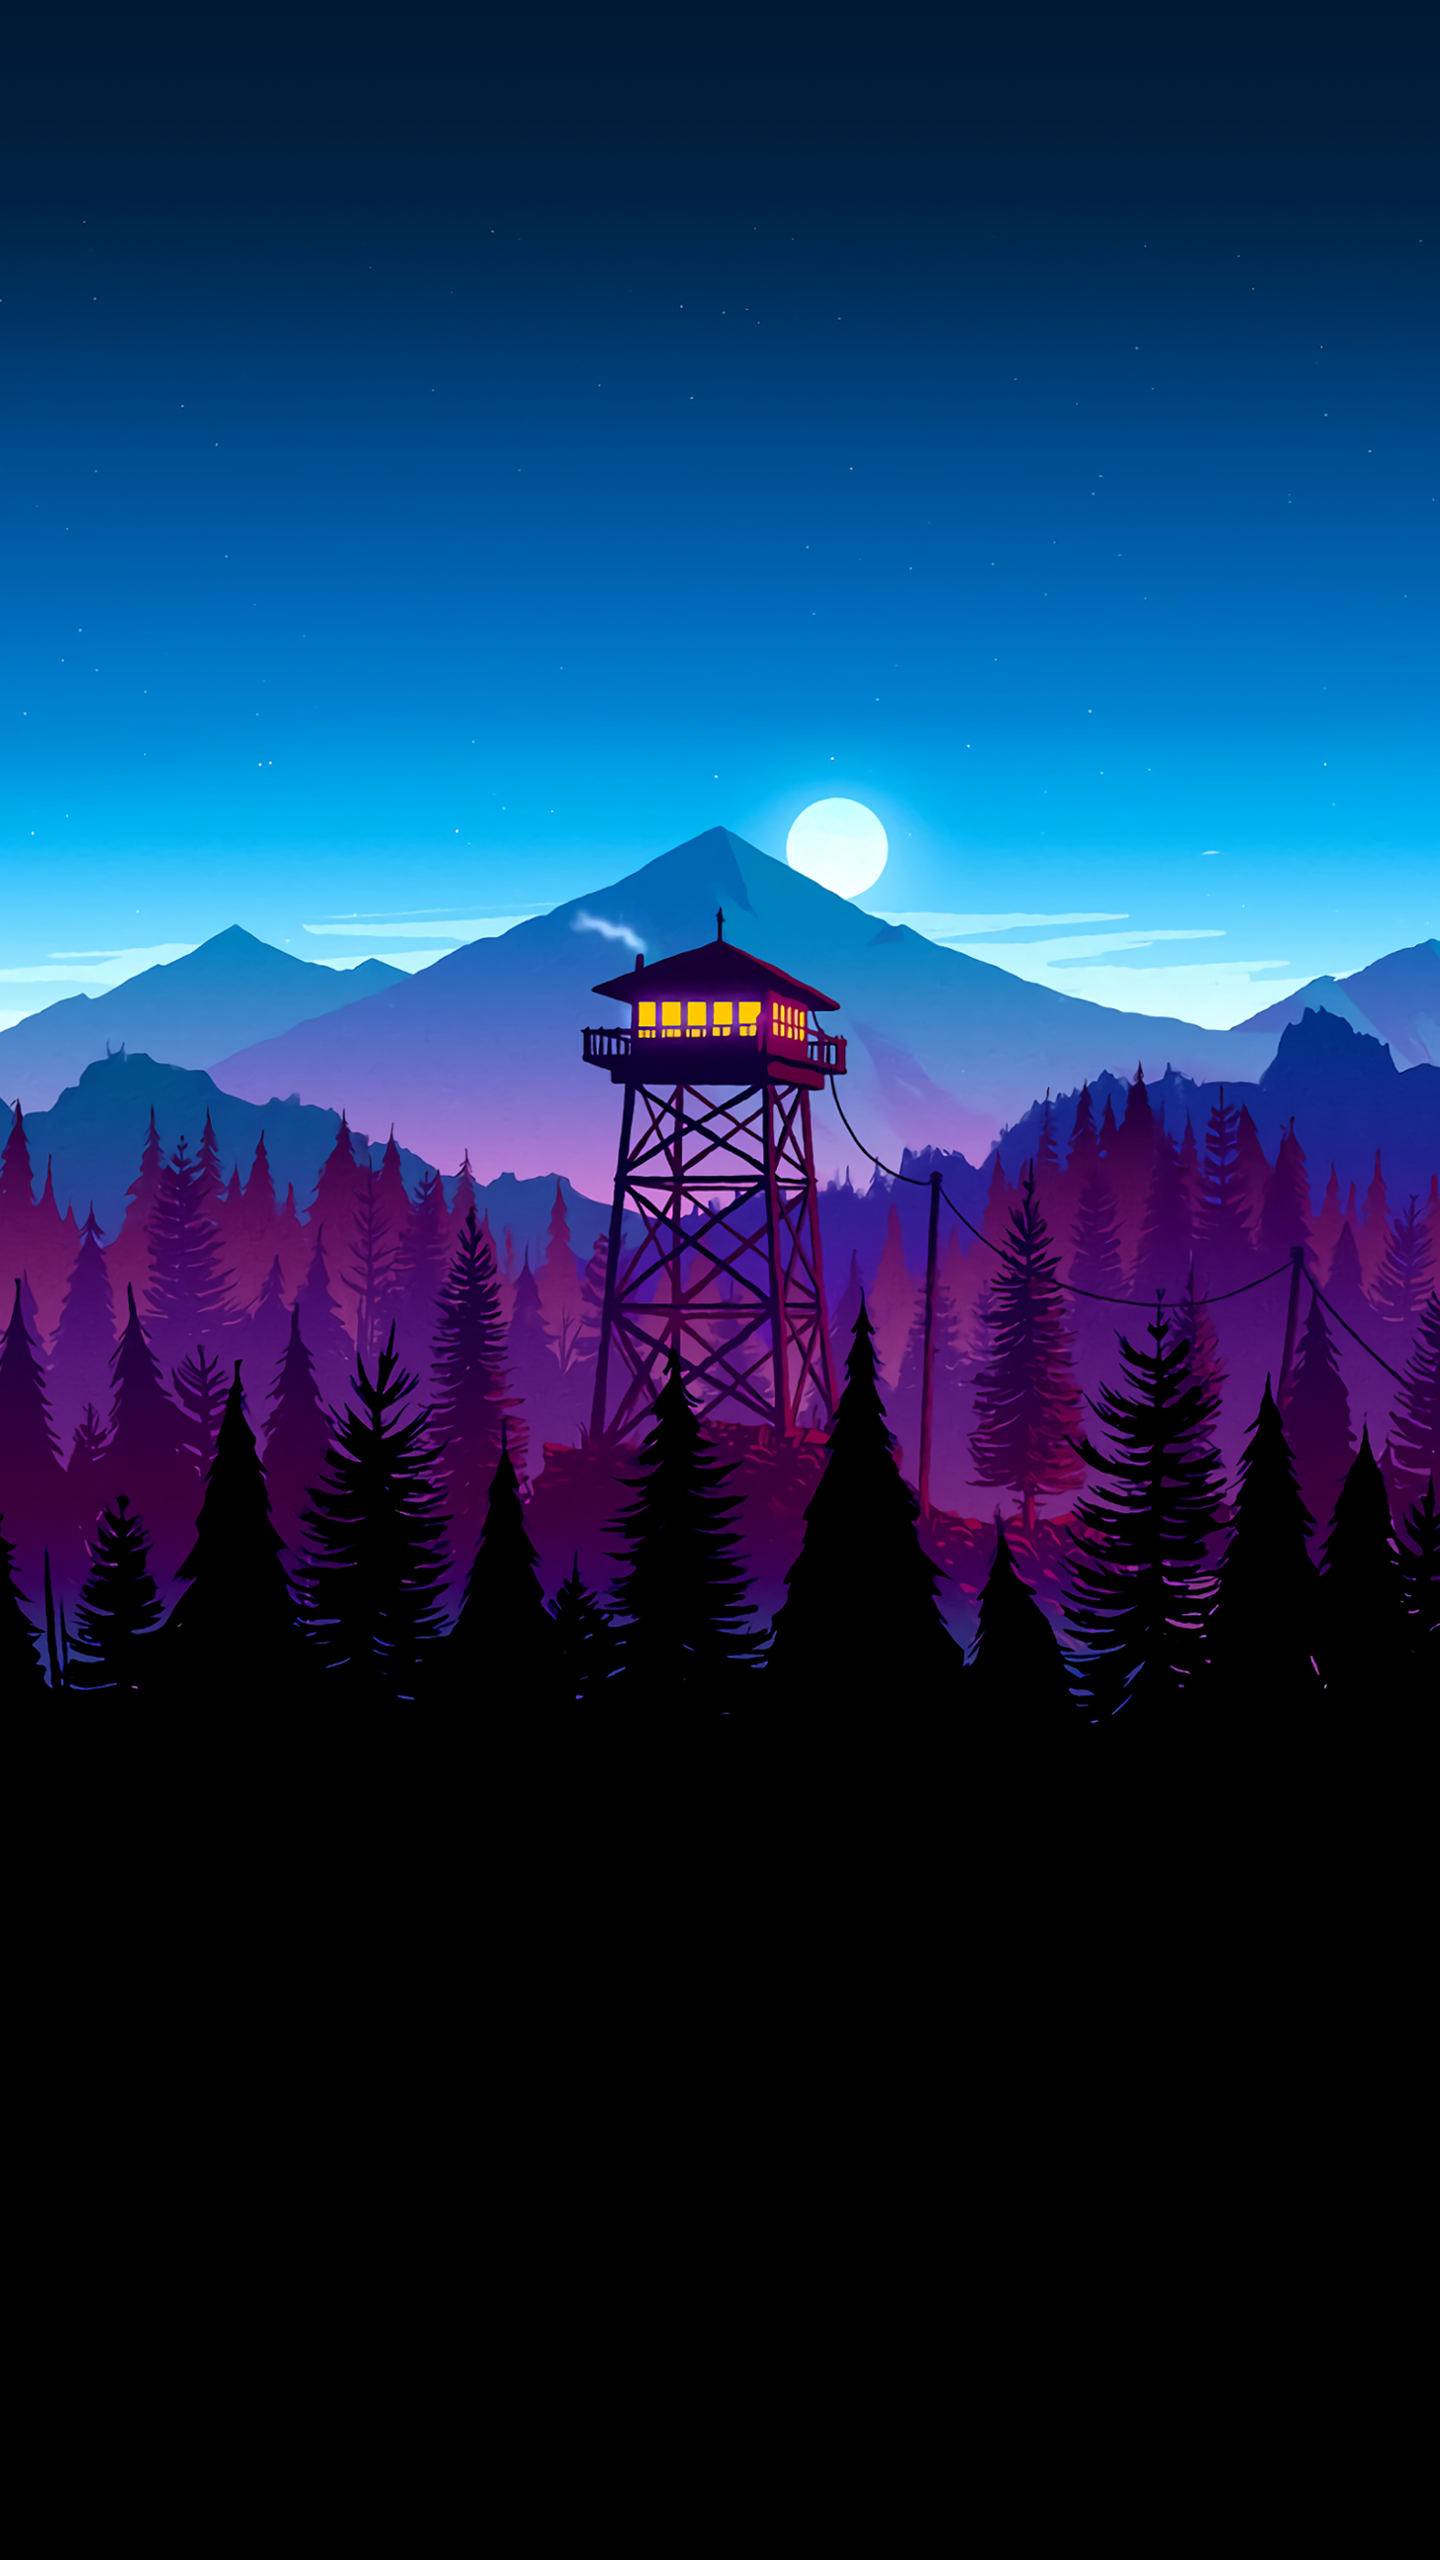 Firewatch NightTime Scene [1440x2560] Scenery wallpaper